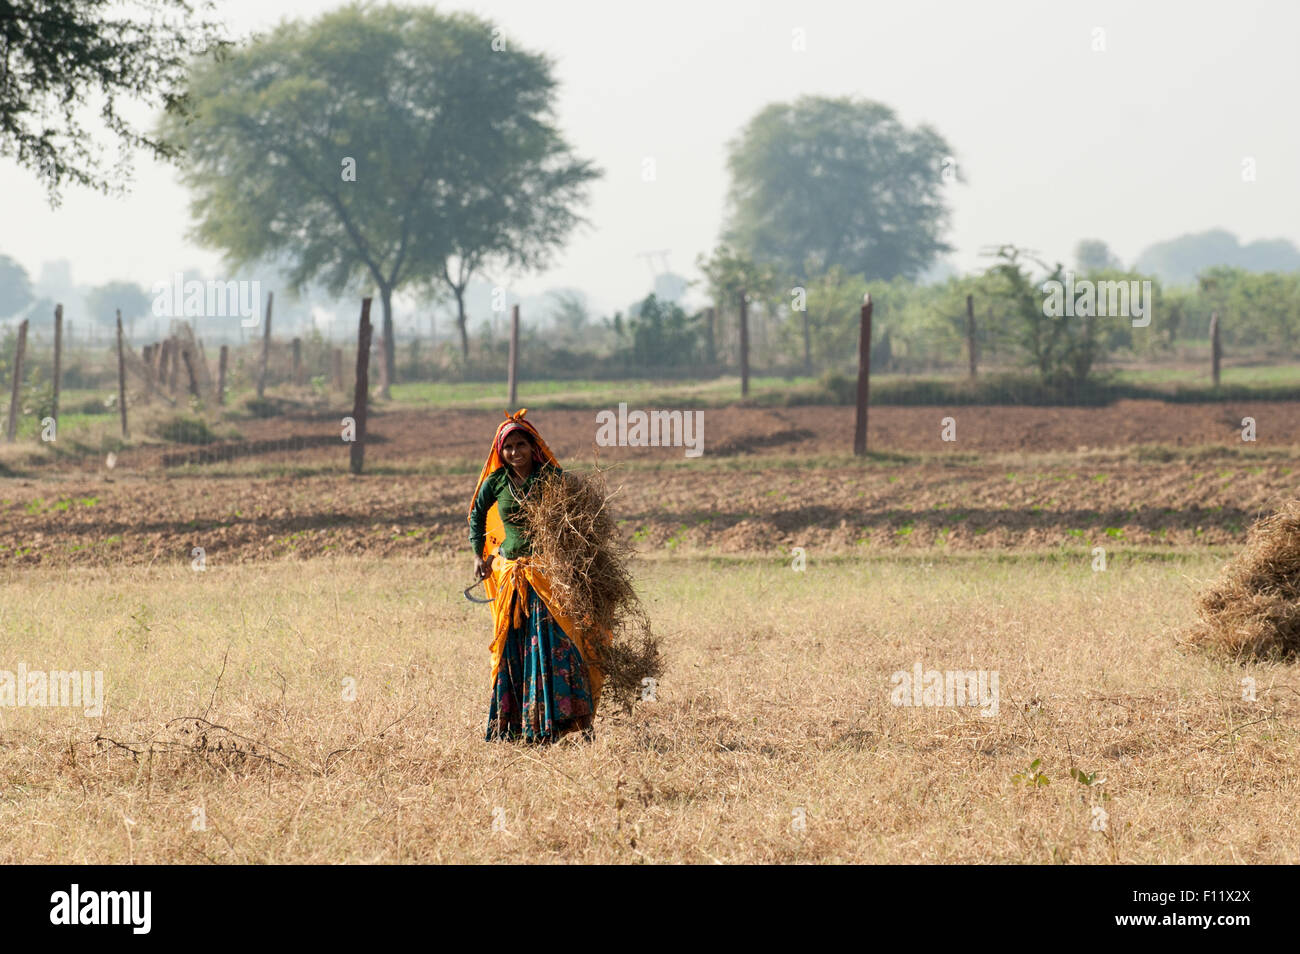 Sawai Madhopur, Rajasthan, India.  Smiling young woman in colourful clothes harvesting crops with a sickle. - Stock Image